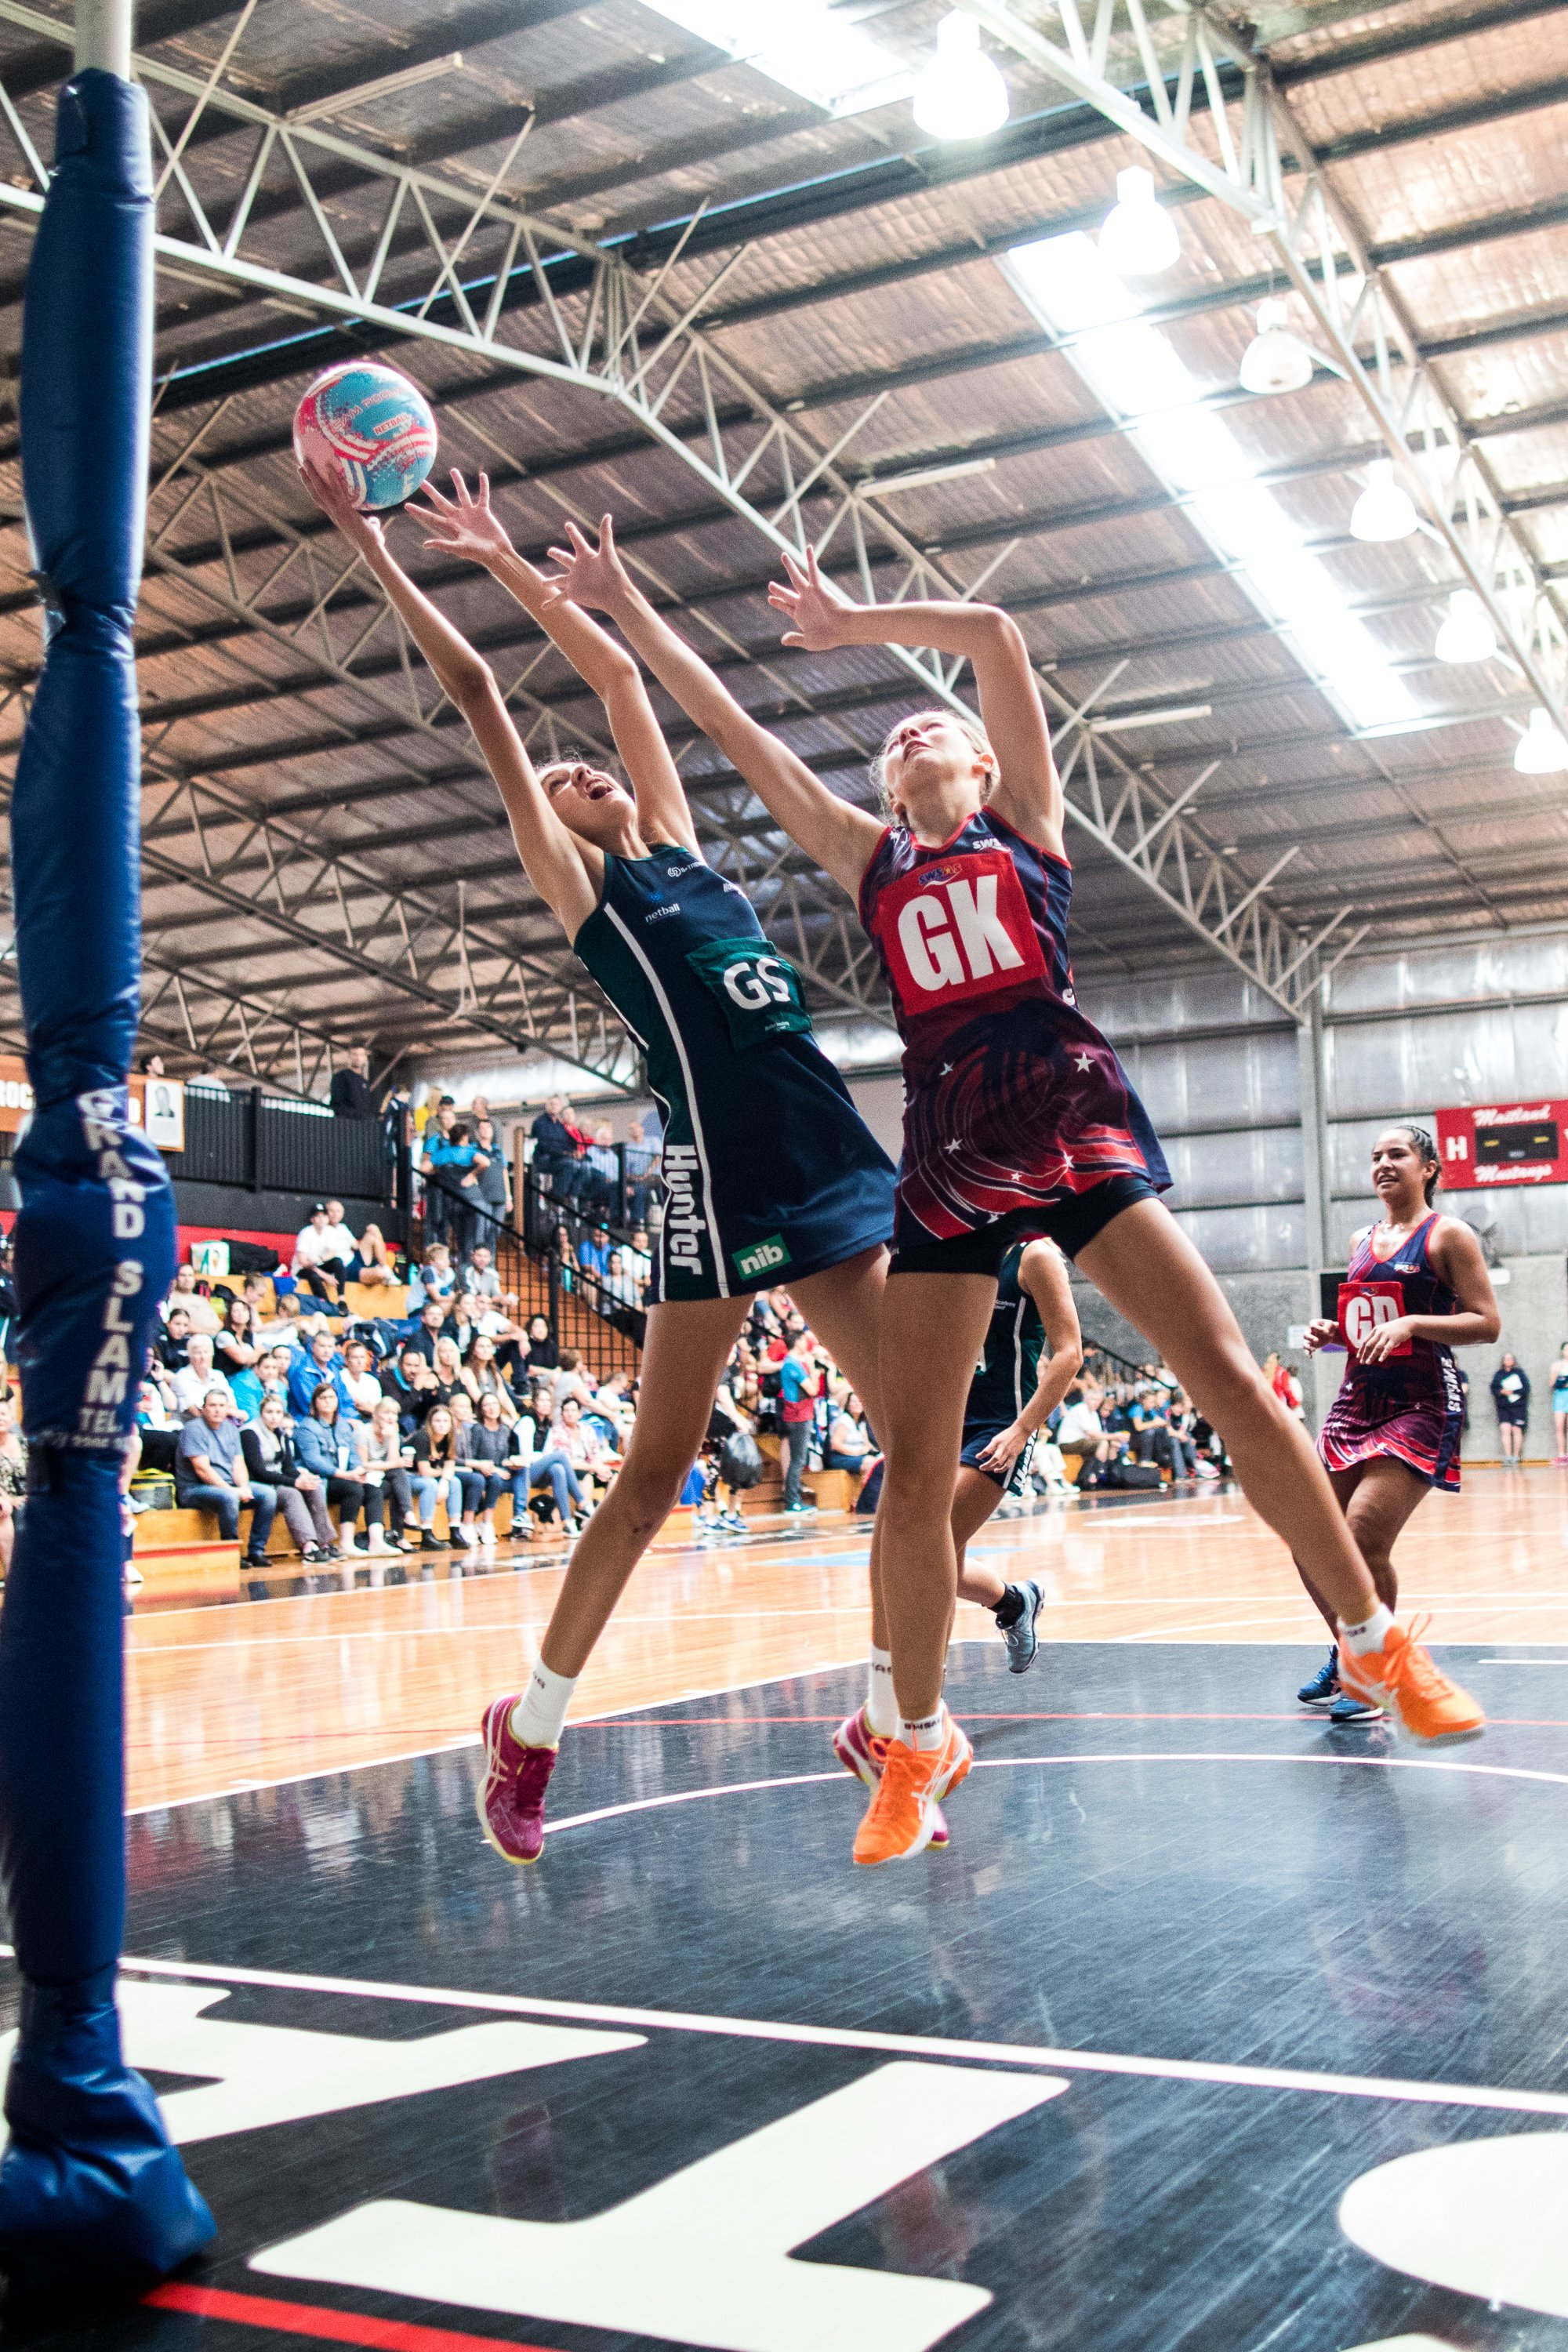 The Hunter Academy of Sport  have confirmed they will be taking over the ownership and management of the only Hunter-based Dooley's Metro League Netball team and will begin operation under a new team name - Hunter Netball.